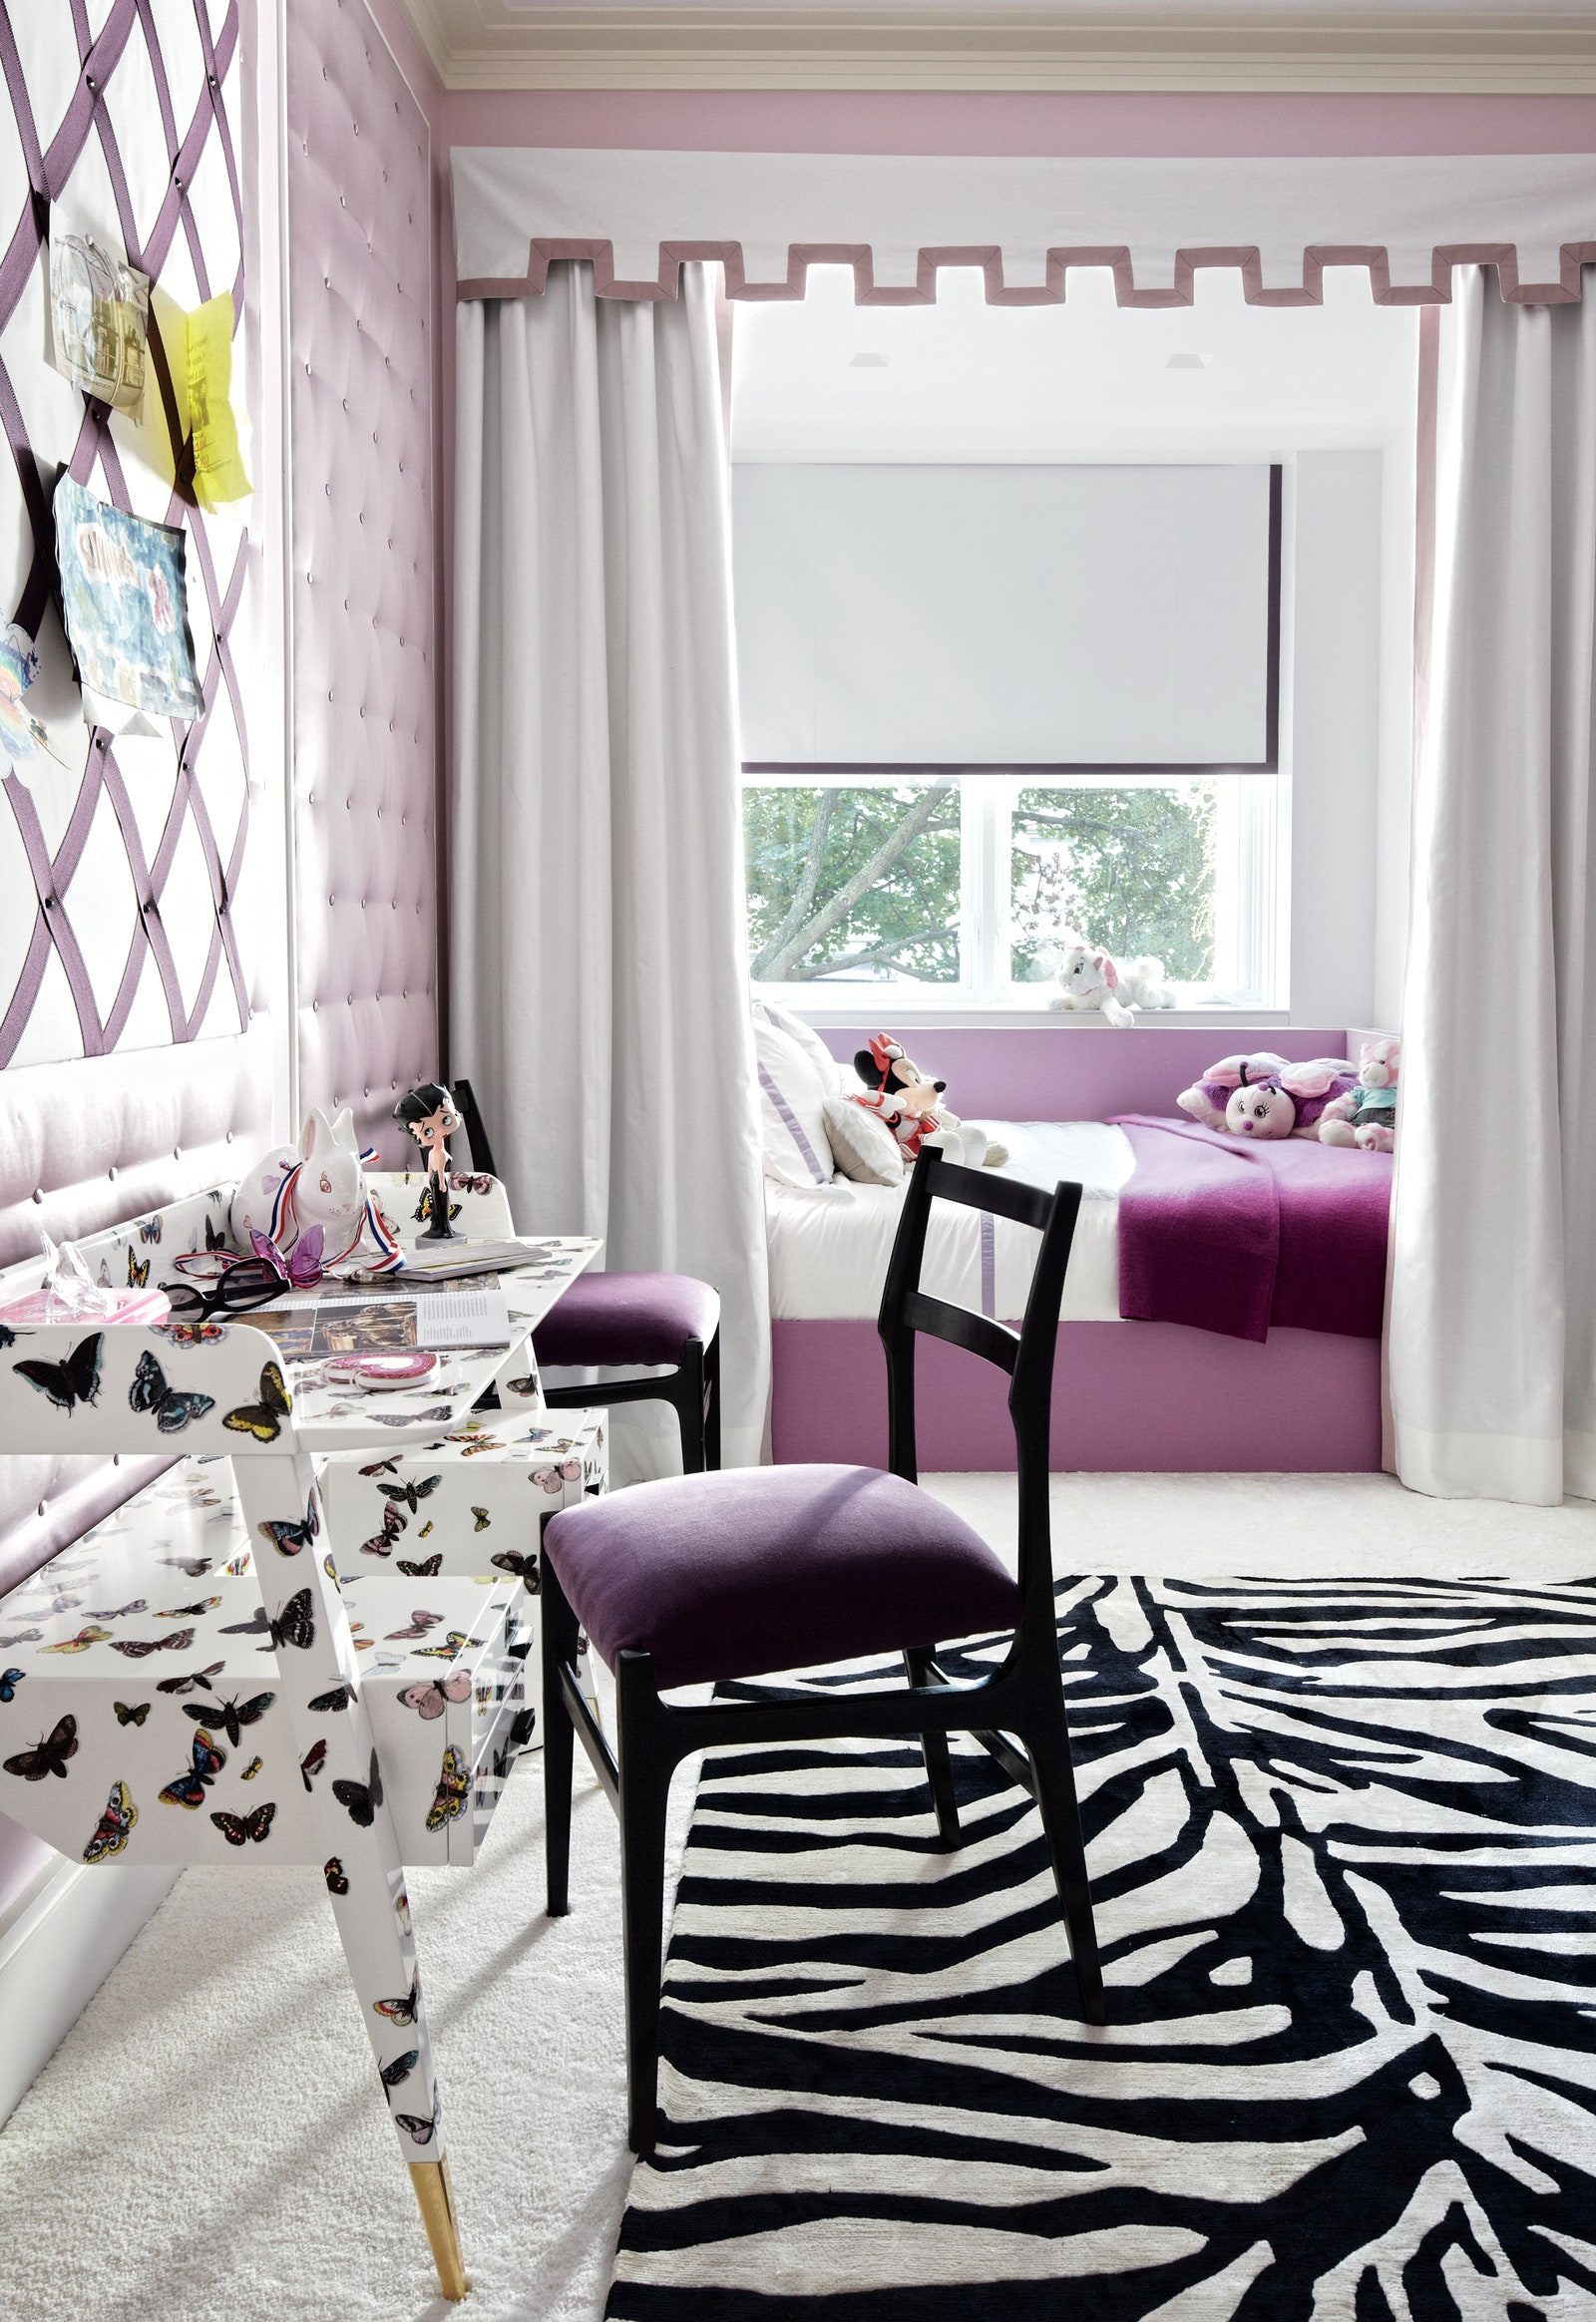 Image may contain Indoors Room Bedroom Rug Furniture Chair Interior Design and Dorm Room